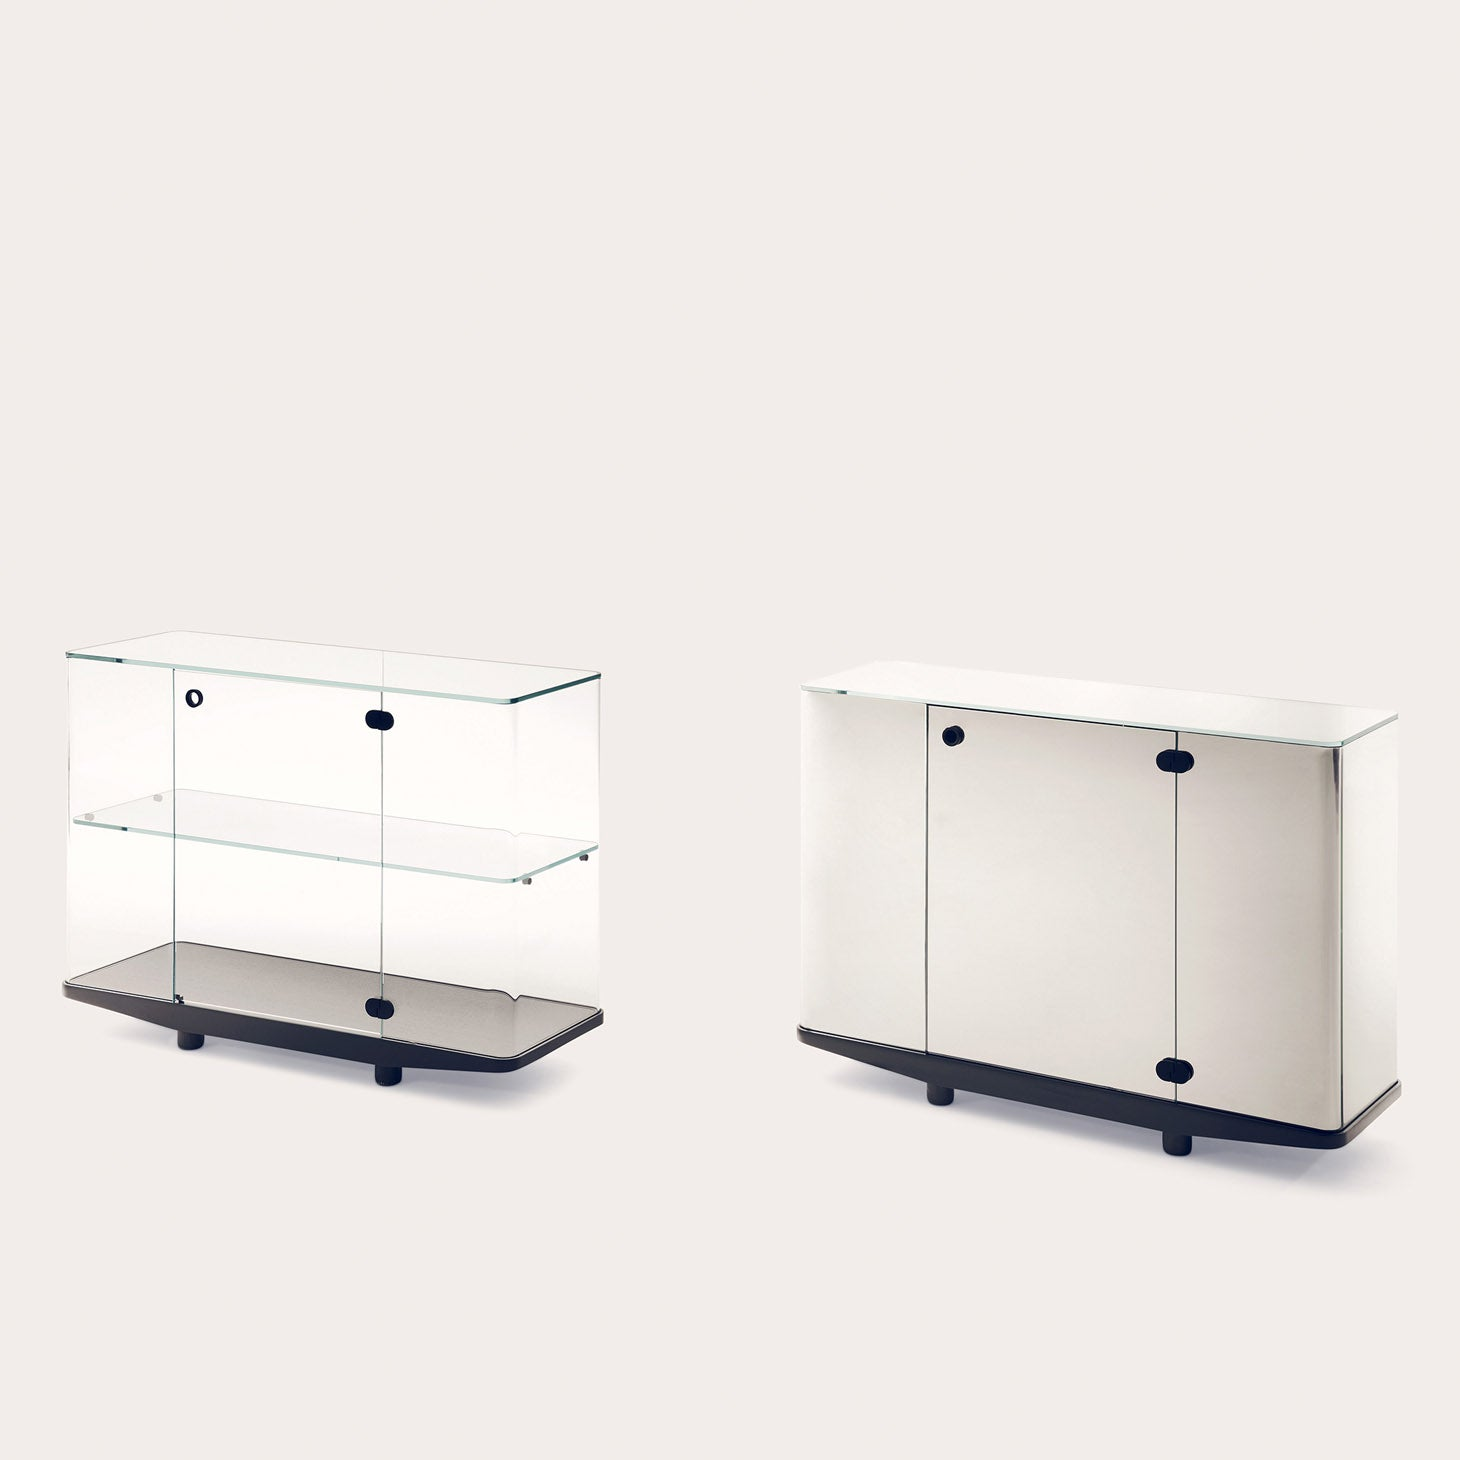 Collector Storage Edward Barber & Jay Osgerby Designer Furniture Sku: 288-220-10018